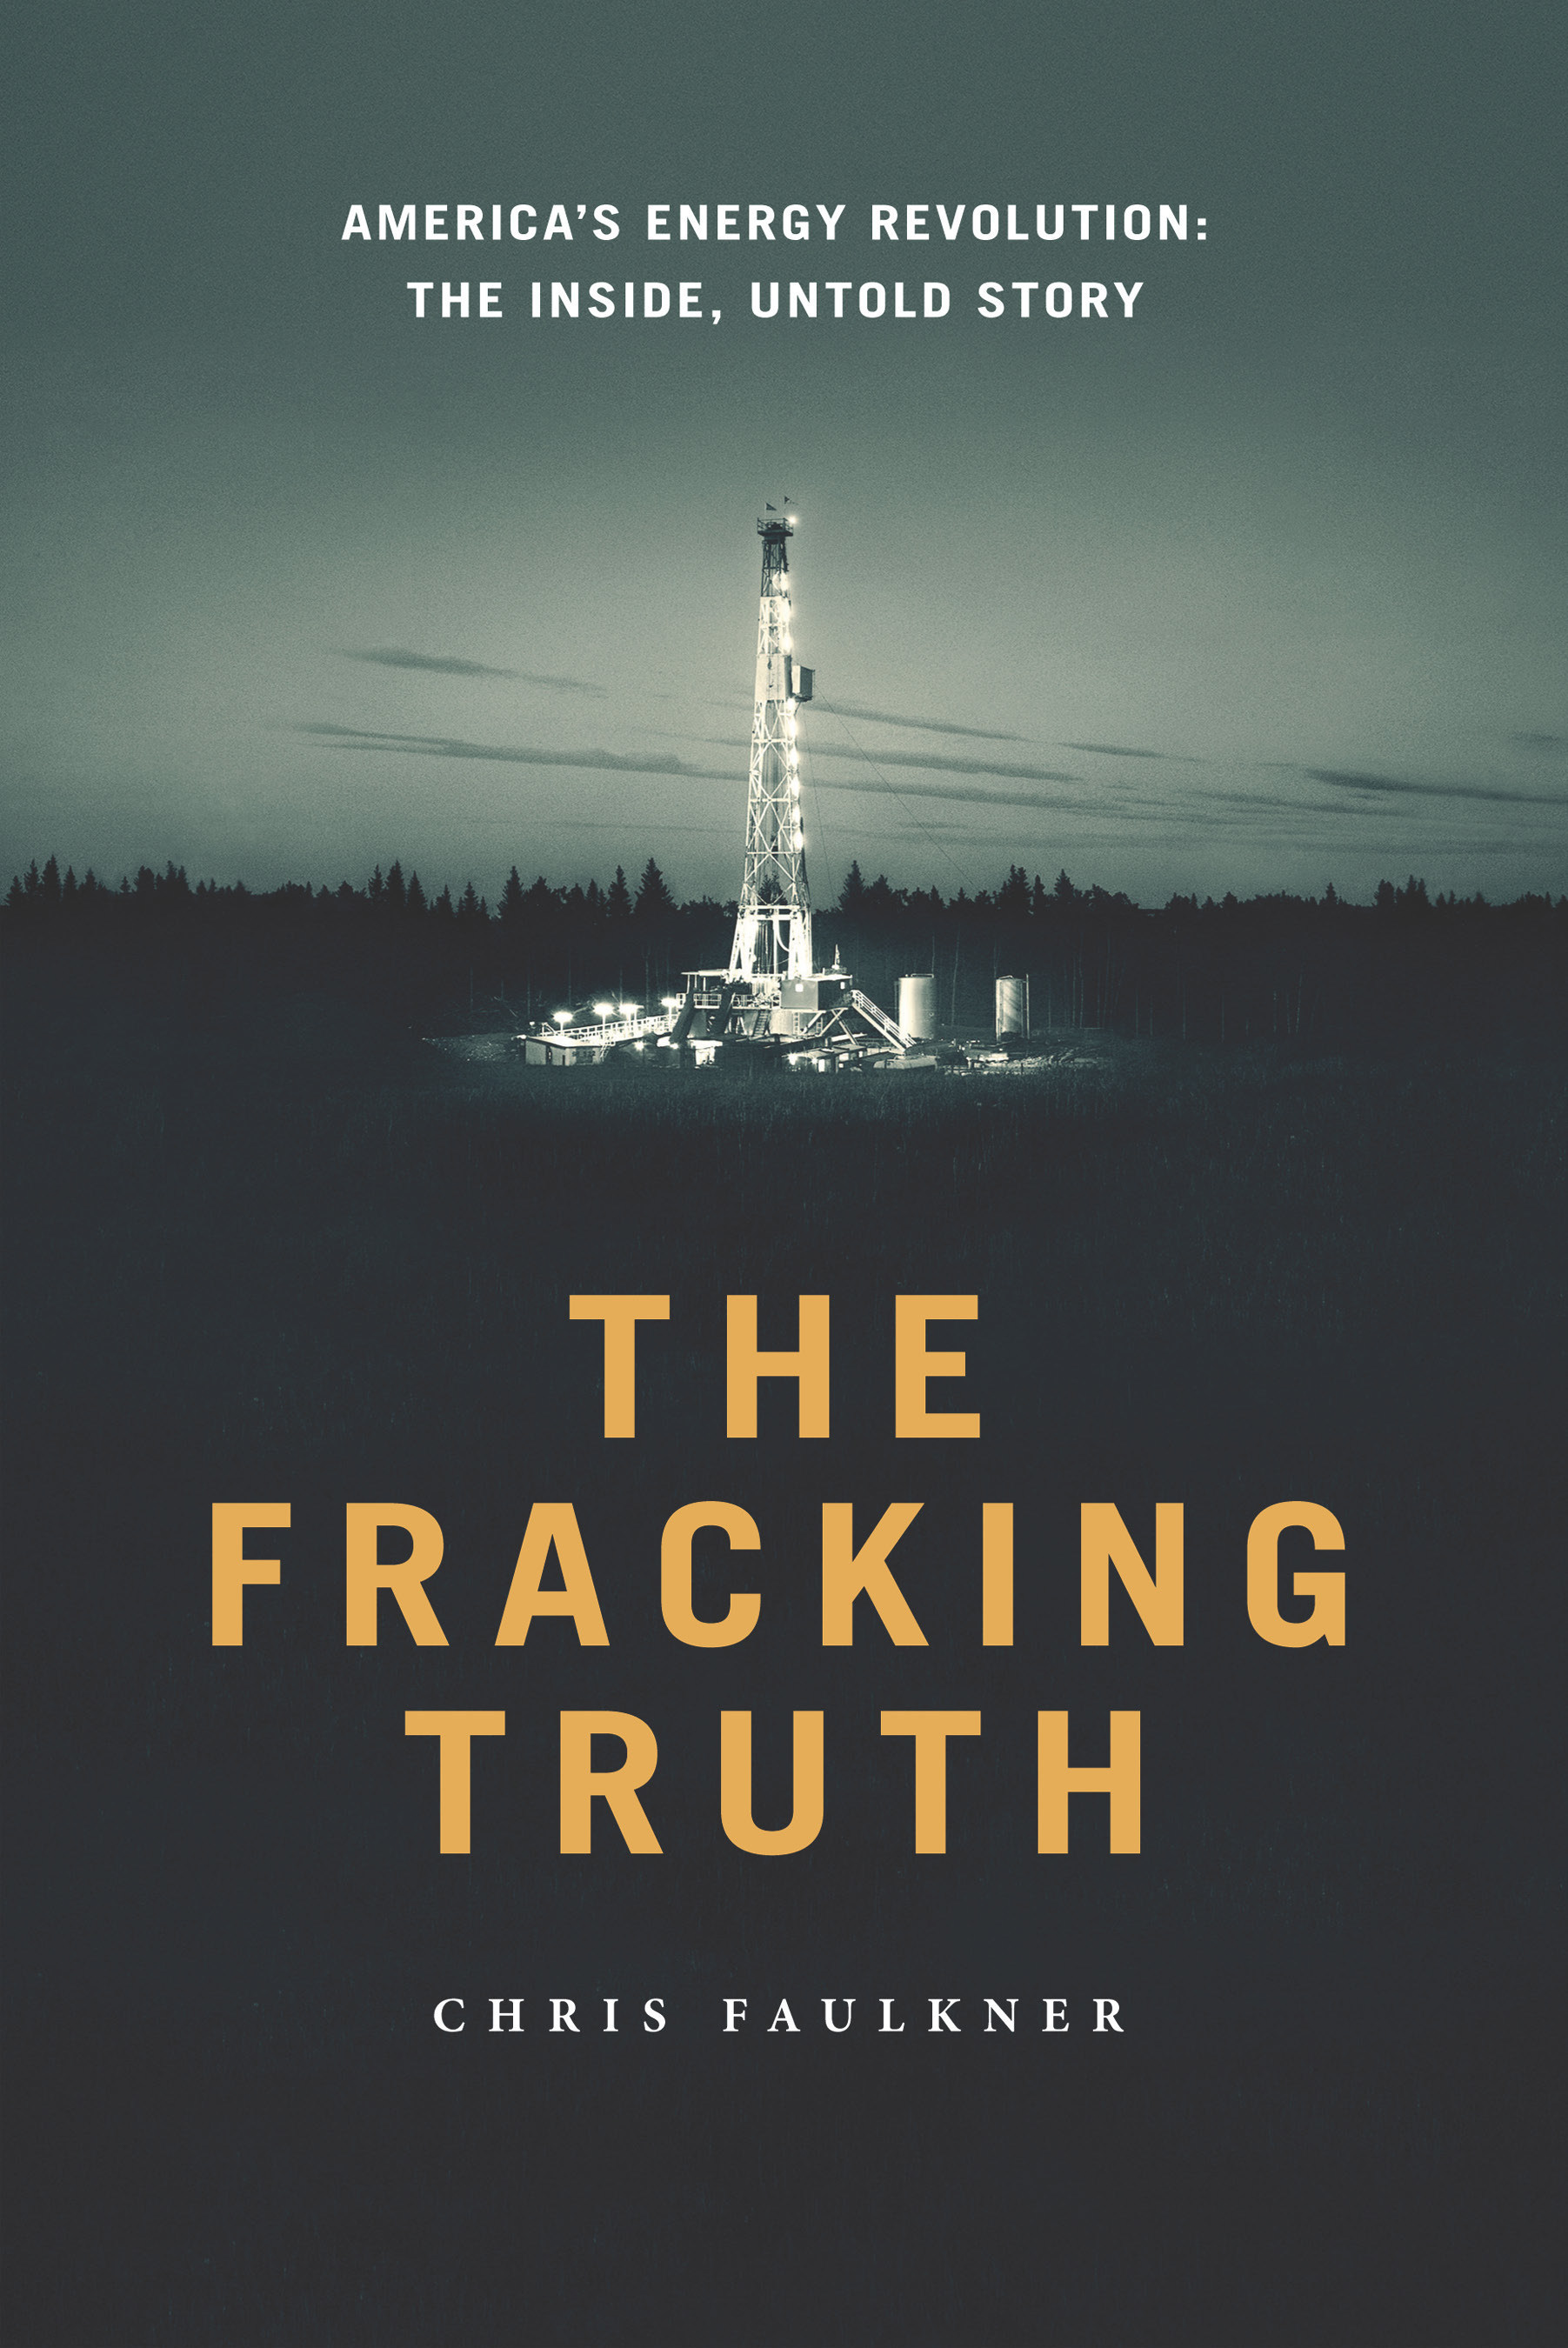 Chris Faulkner Announces 'The Fracking Truth'